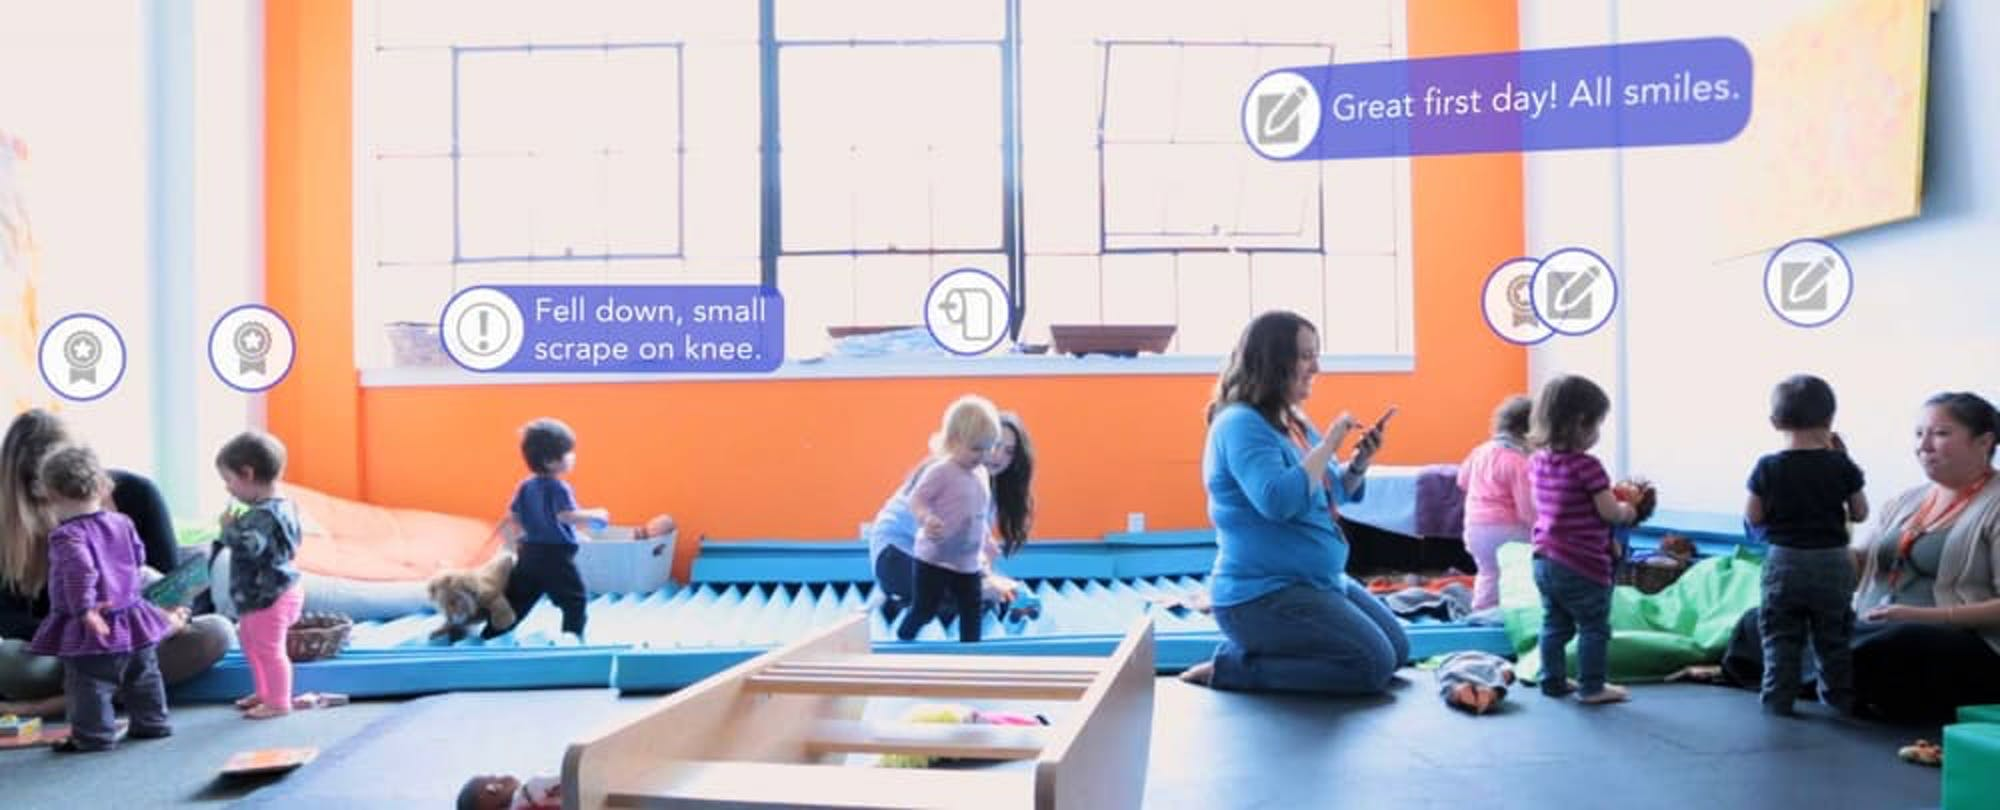 Brightwheel Acquires MyChild, Targets Early Education With Mobile App